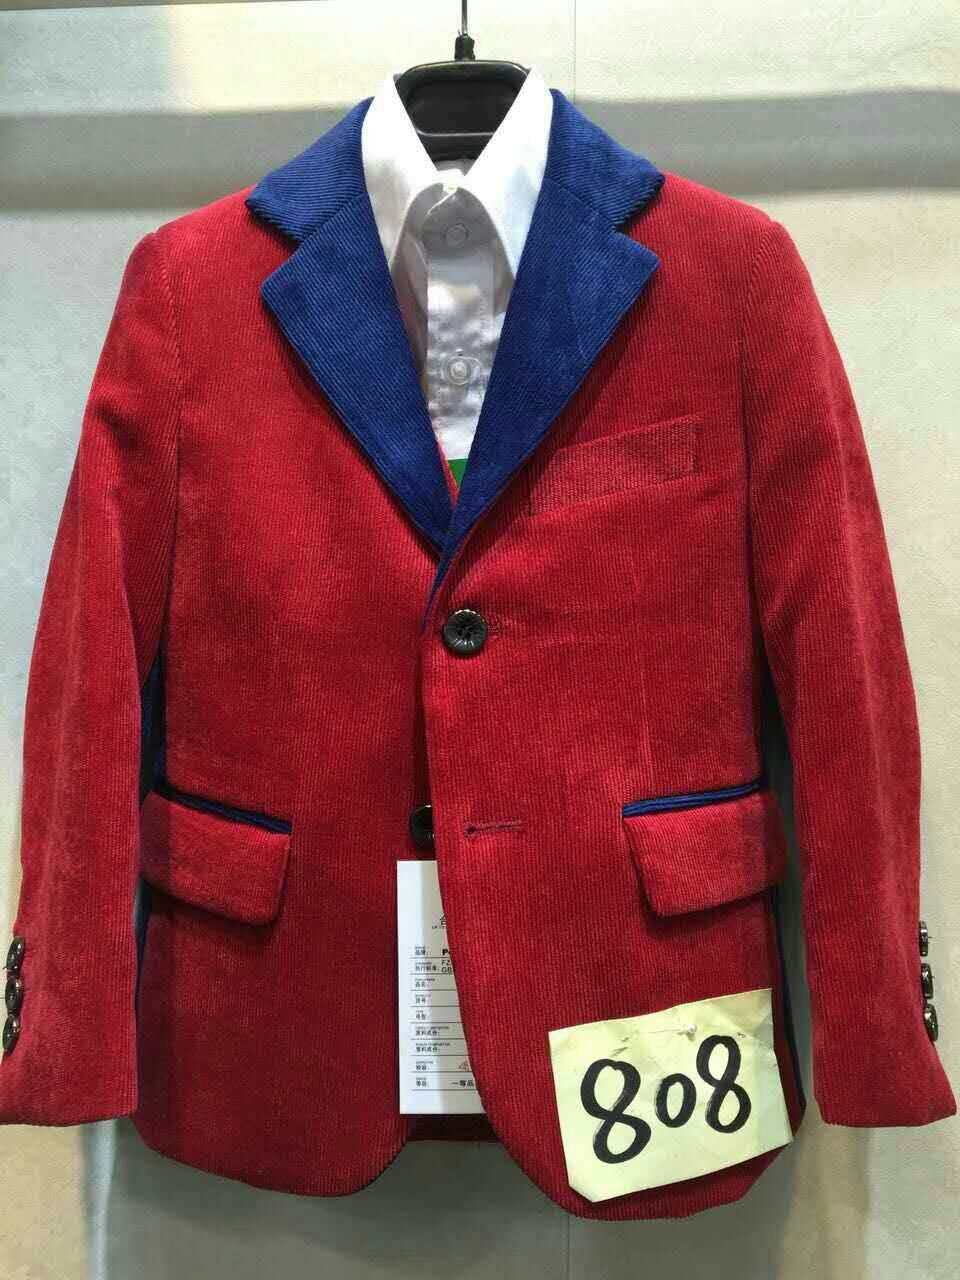 Boys Corduroy Suits Red Wedding Tuxedo for Children Formal Terno Jacket Vest and Pant 3PCS Education Party Suits  недорого